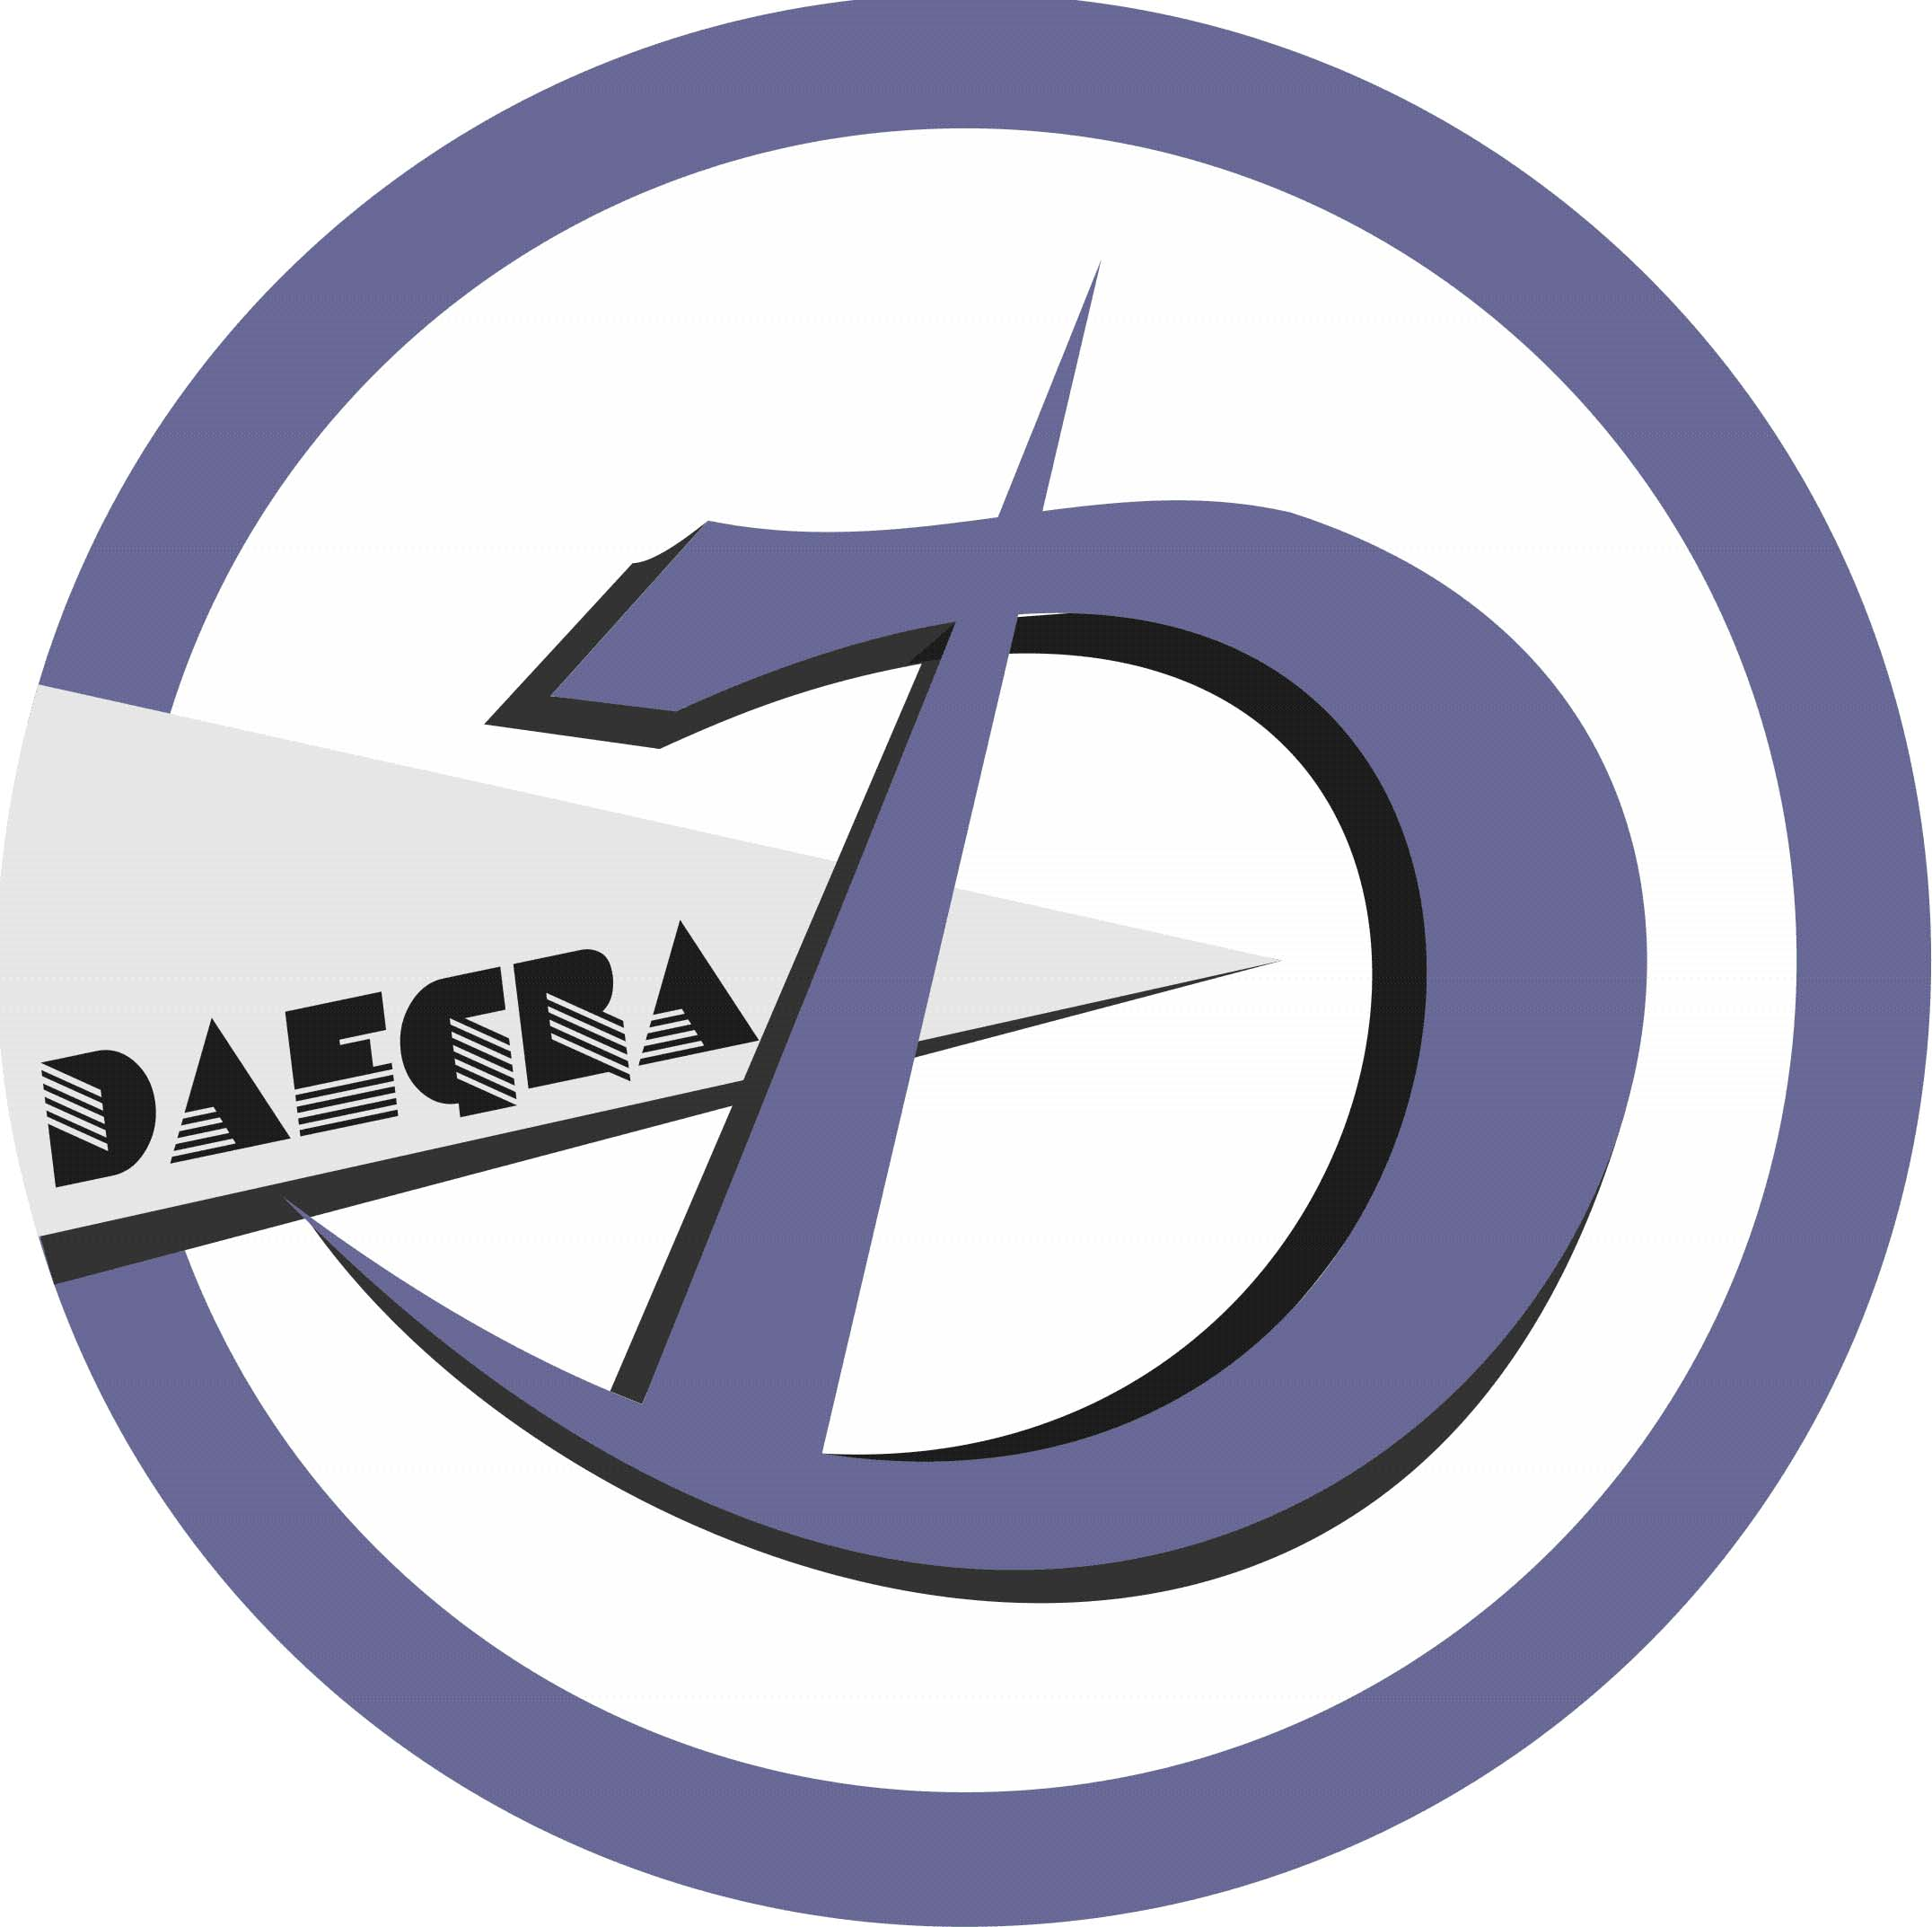 Daegra Placement logo